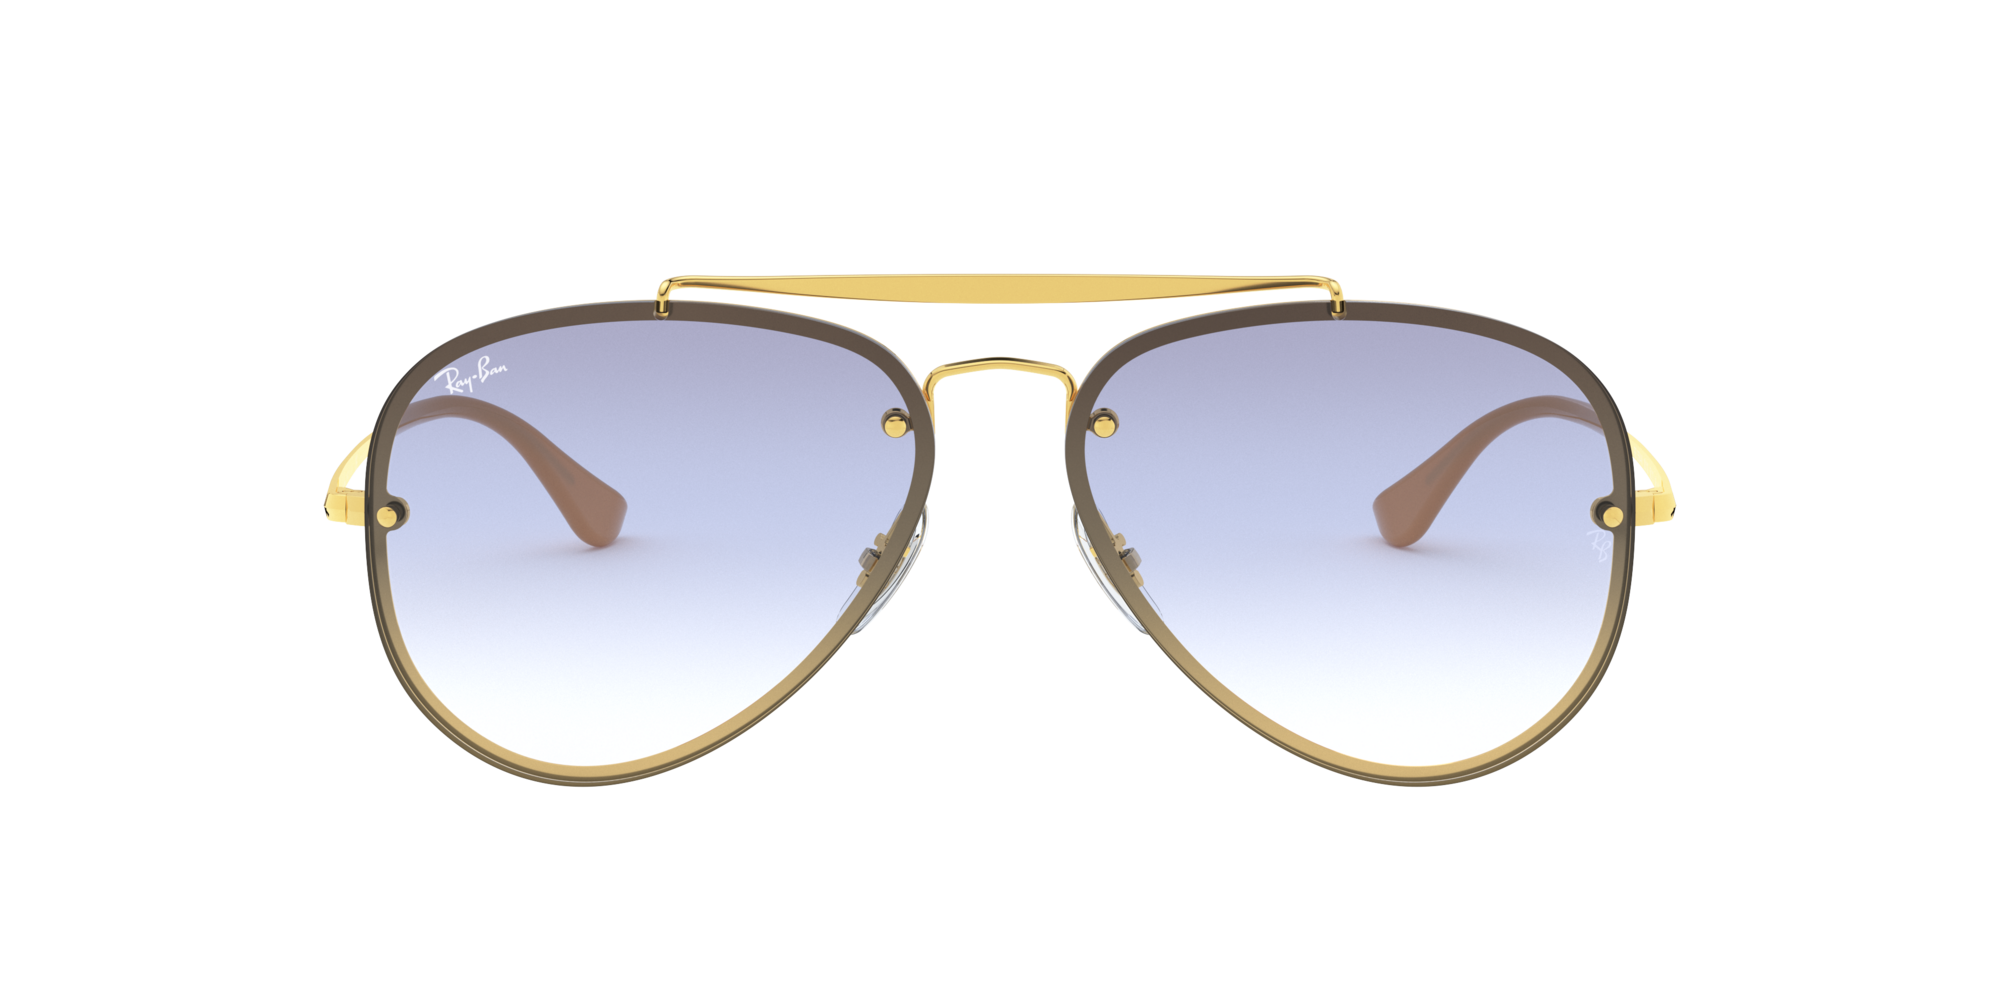 Image for RB3584N 58 BLAZE AVIATOR from LensCrafters | Glasses, Prescription Glasses Online, Eyewear